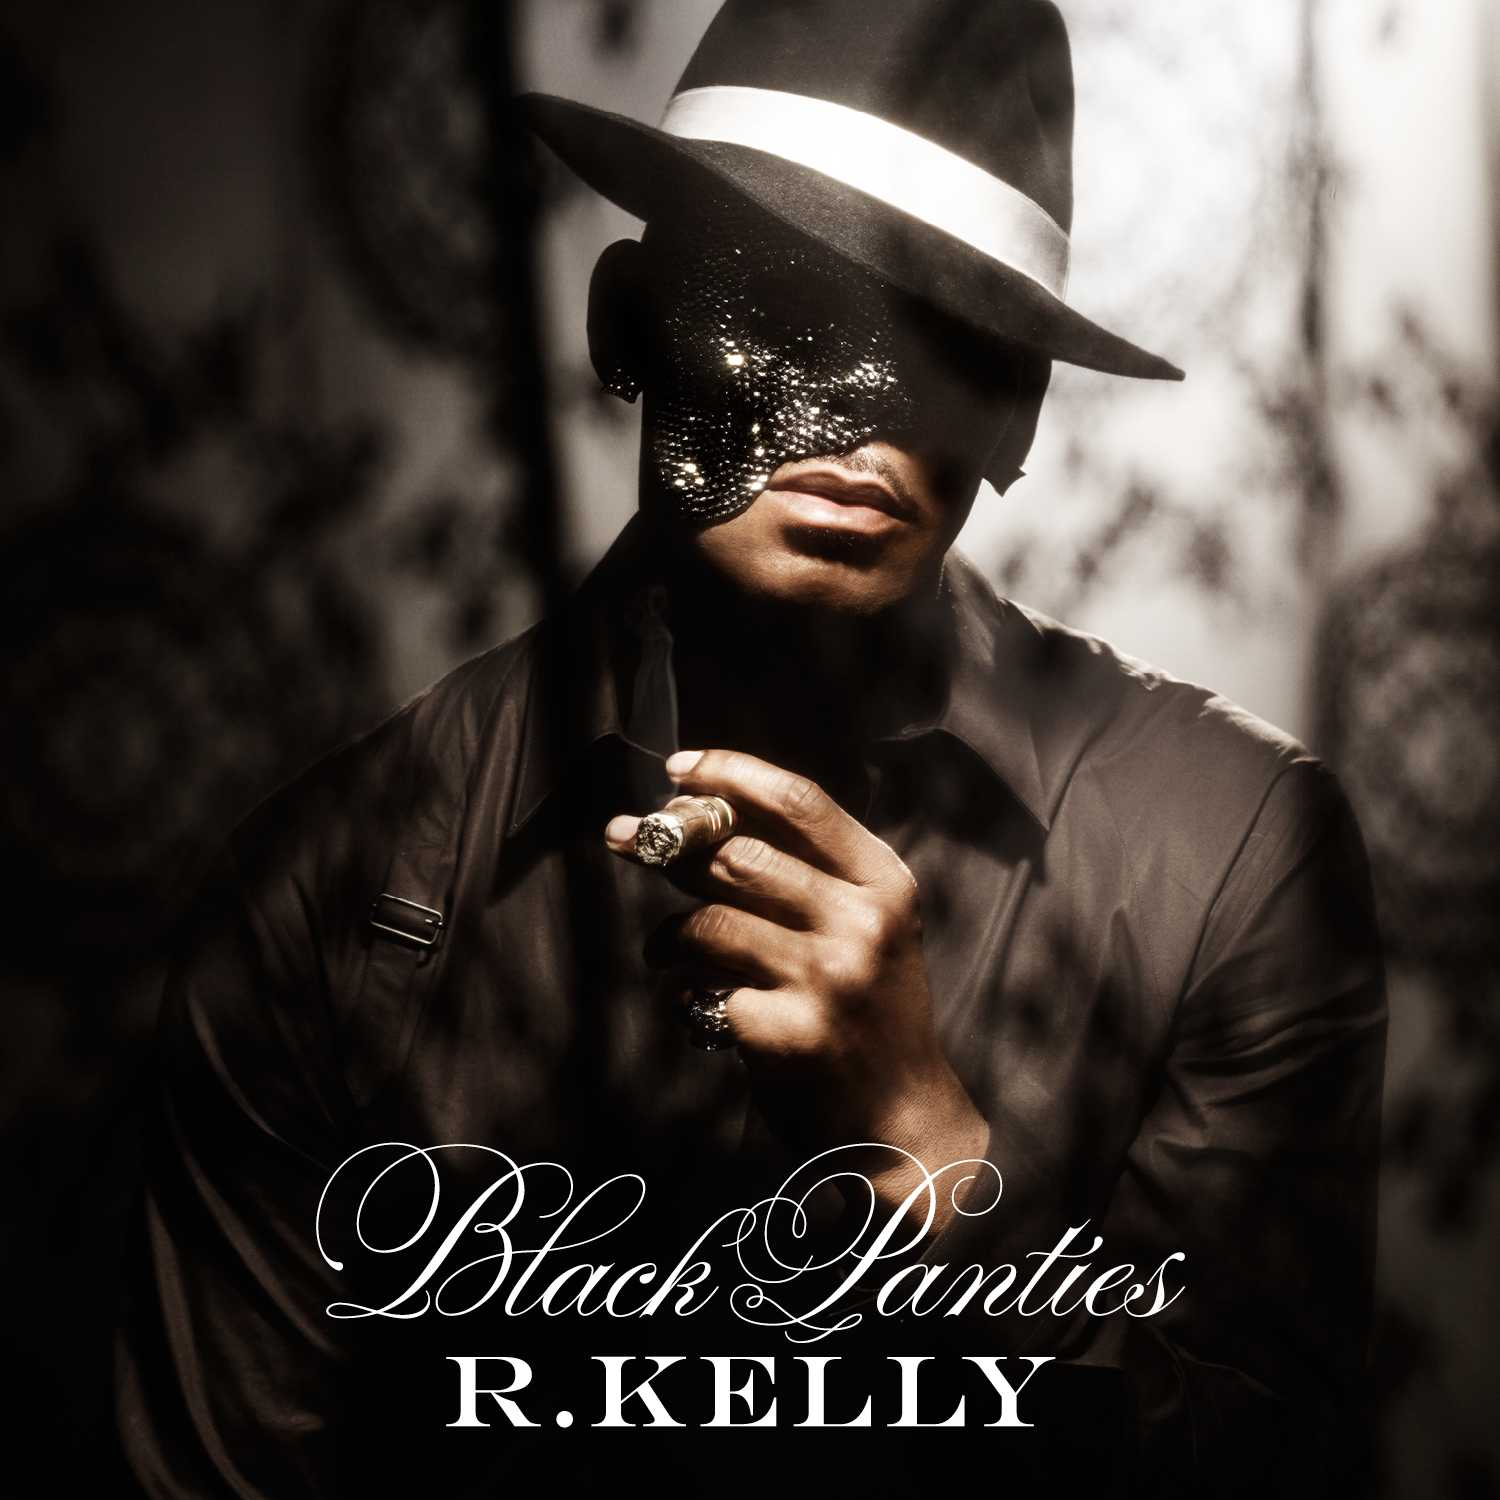 SM South News : Black Panties: An R. Kelly Album review.